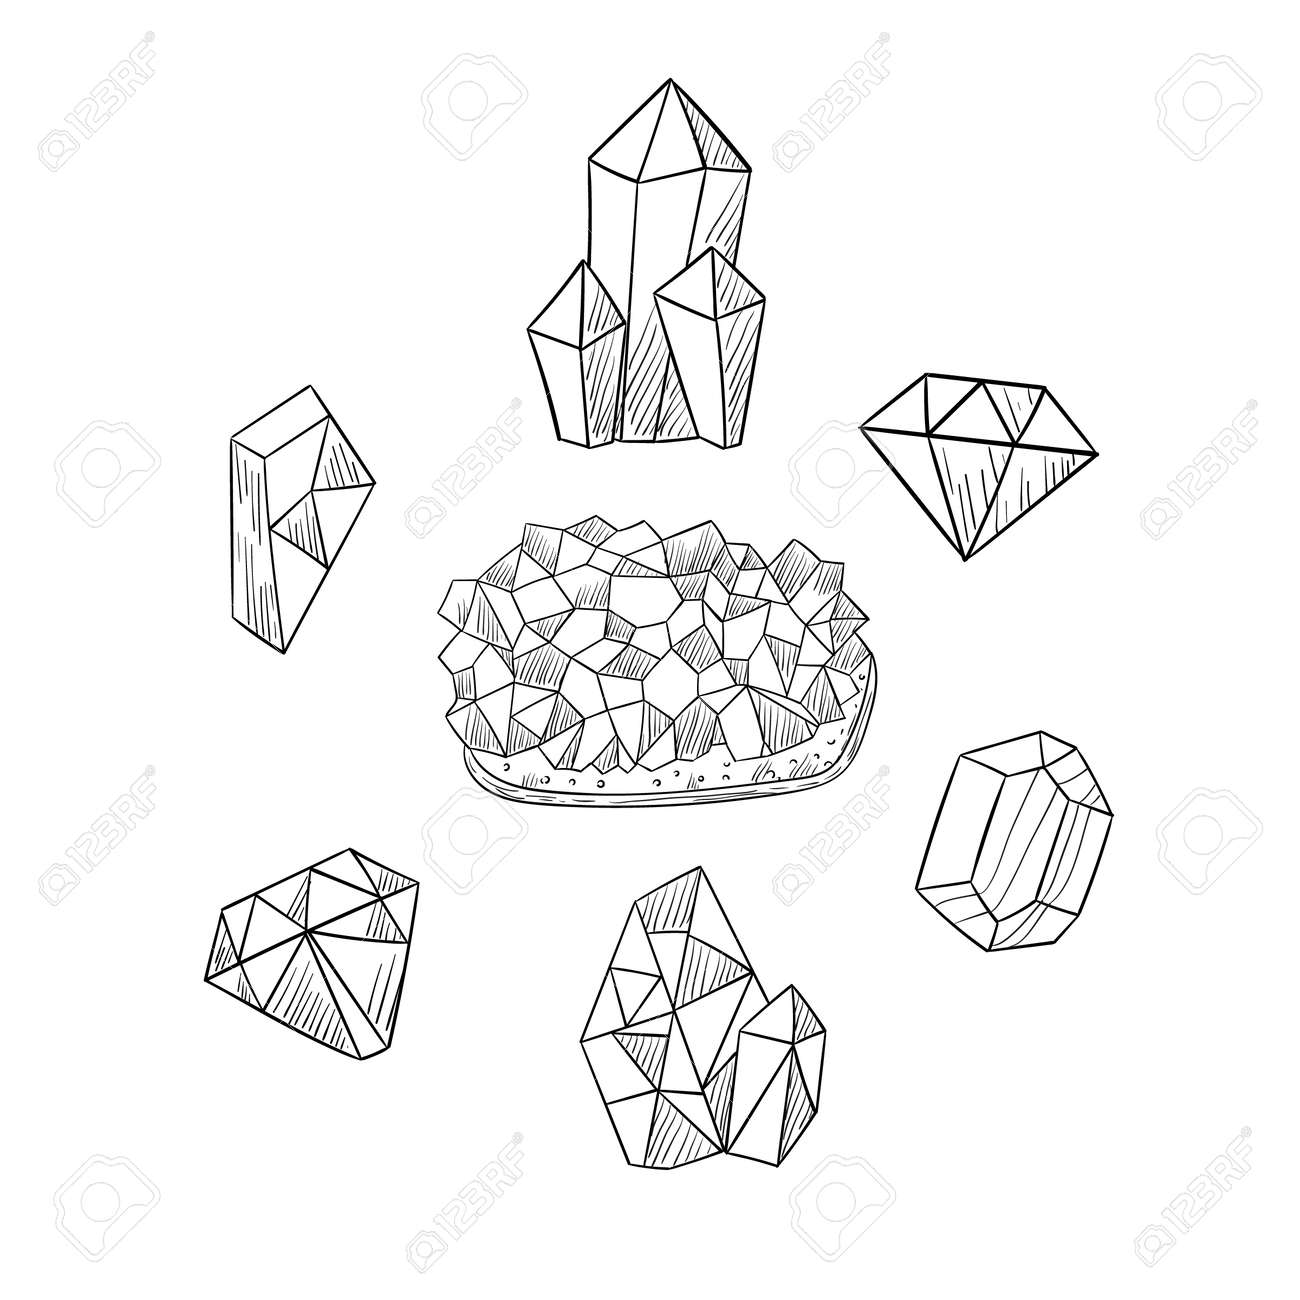 Freehand drawing of various crystals. Sketch of crystals icons. Vector illustration. - 167208080